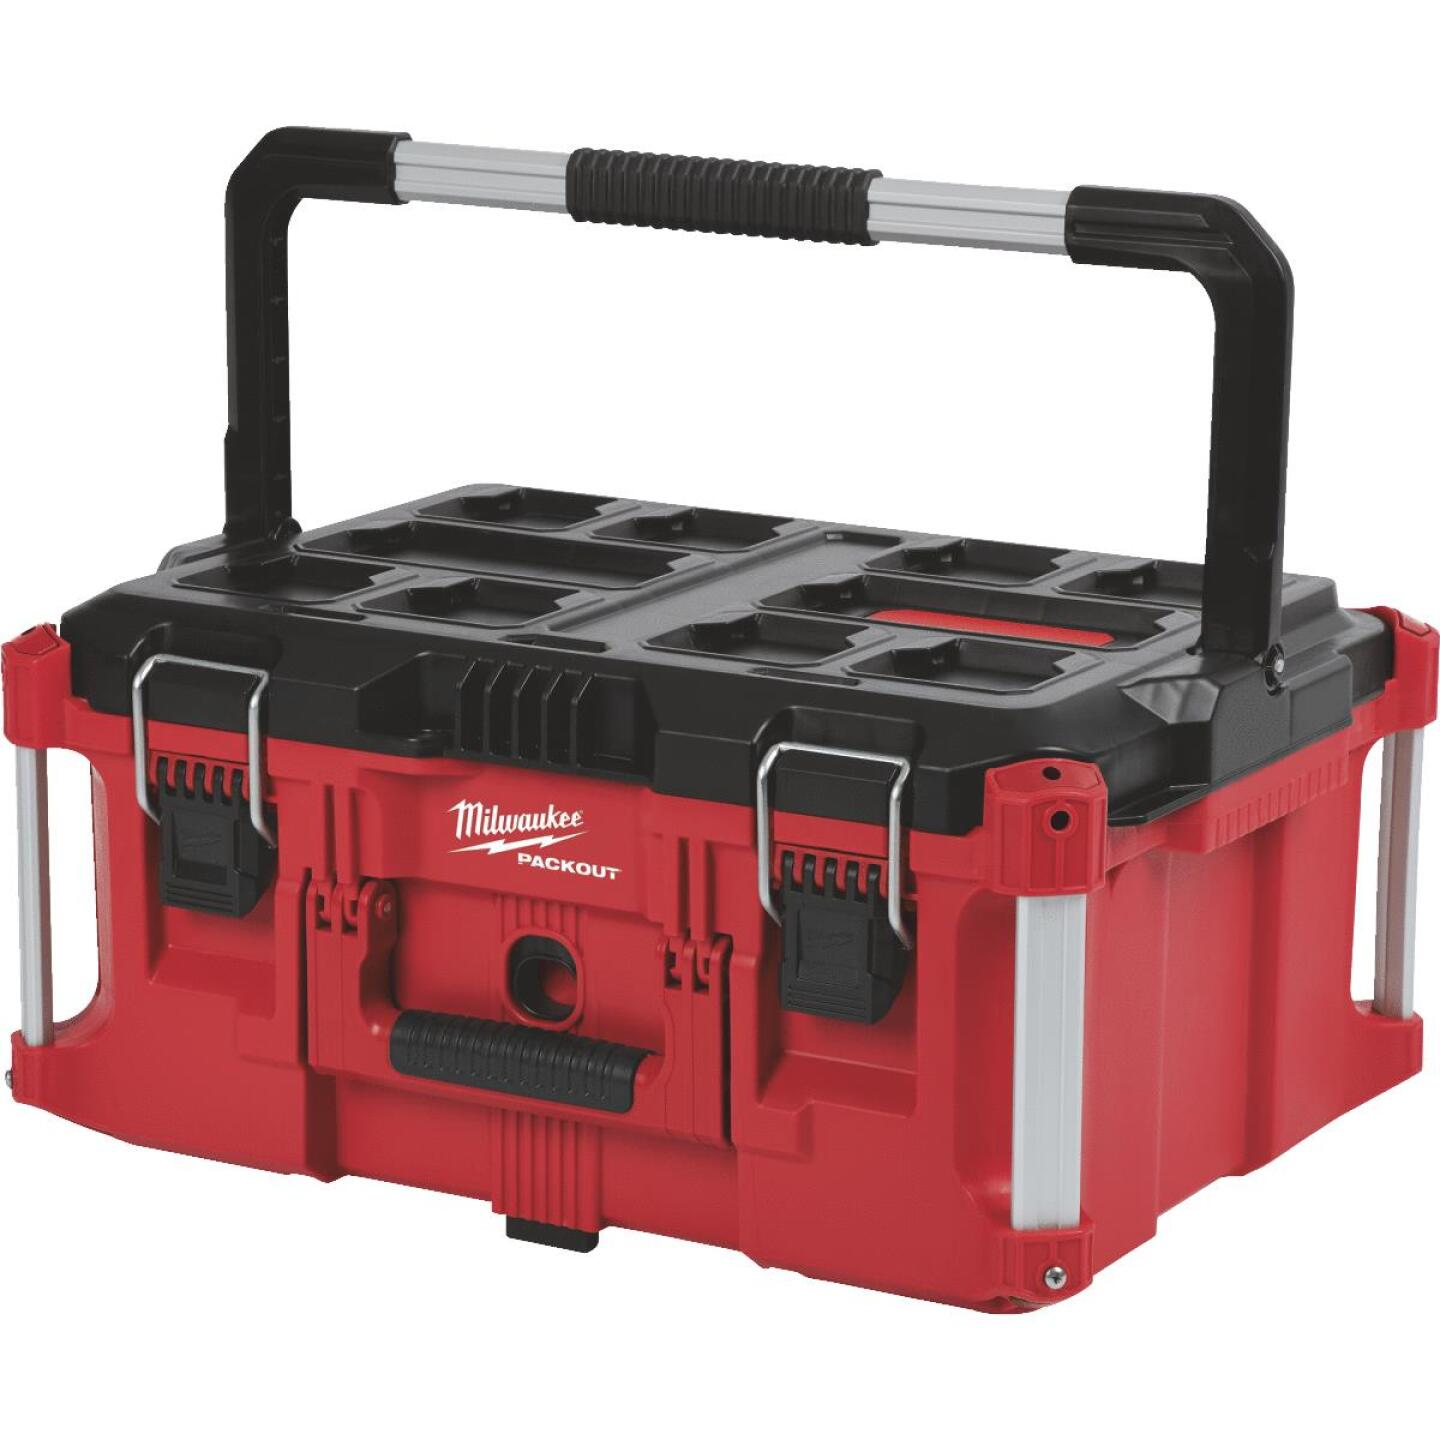 Milwaukee PACKOUT 16 In. Large Toolbox Image 1